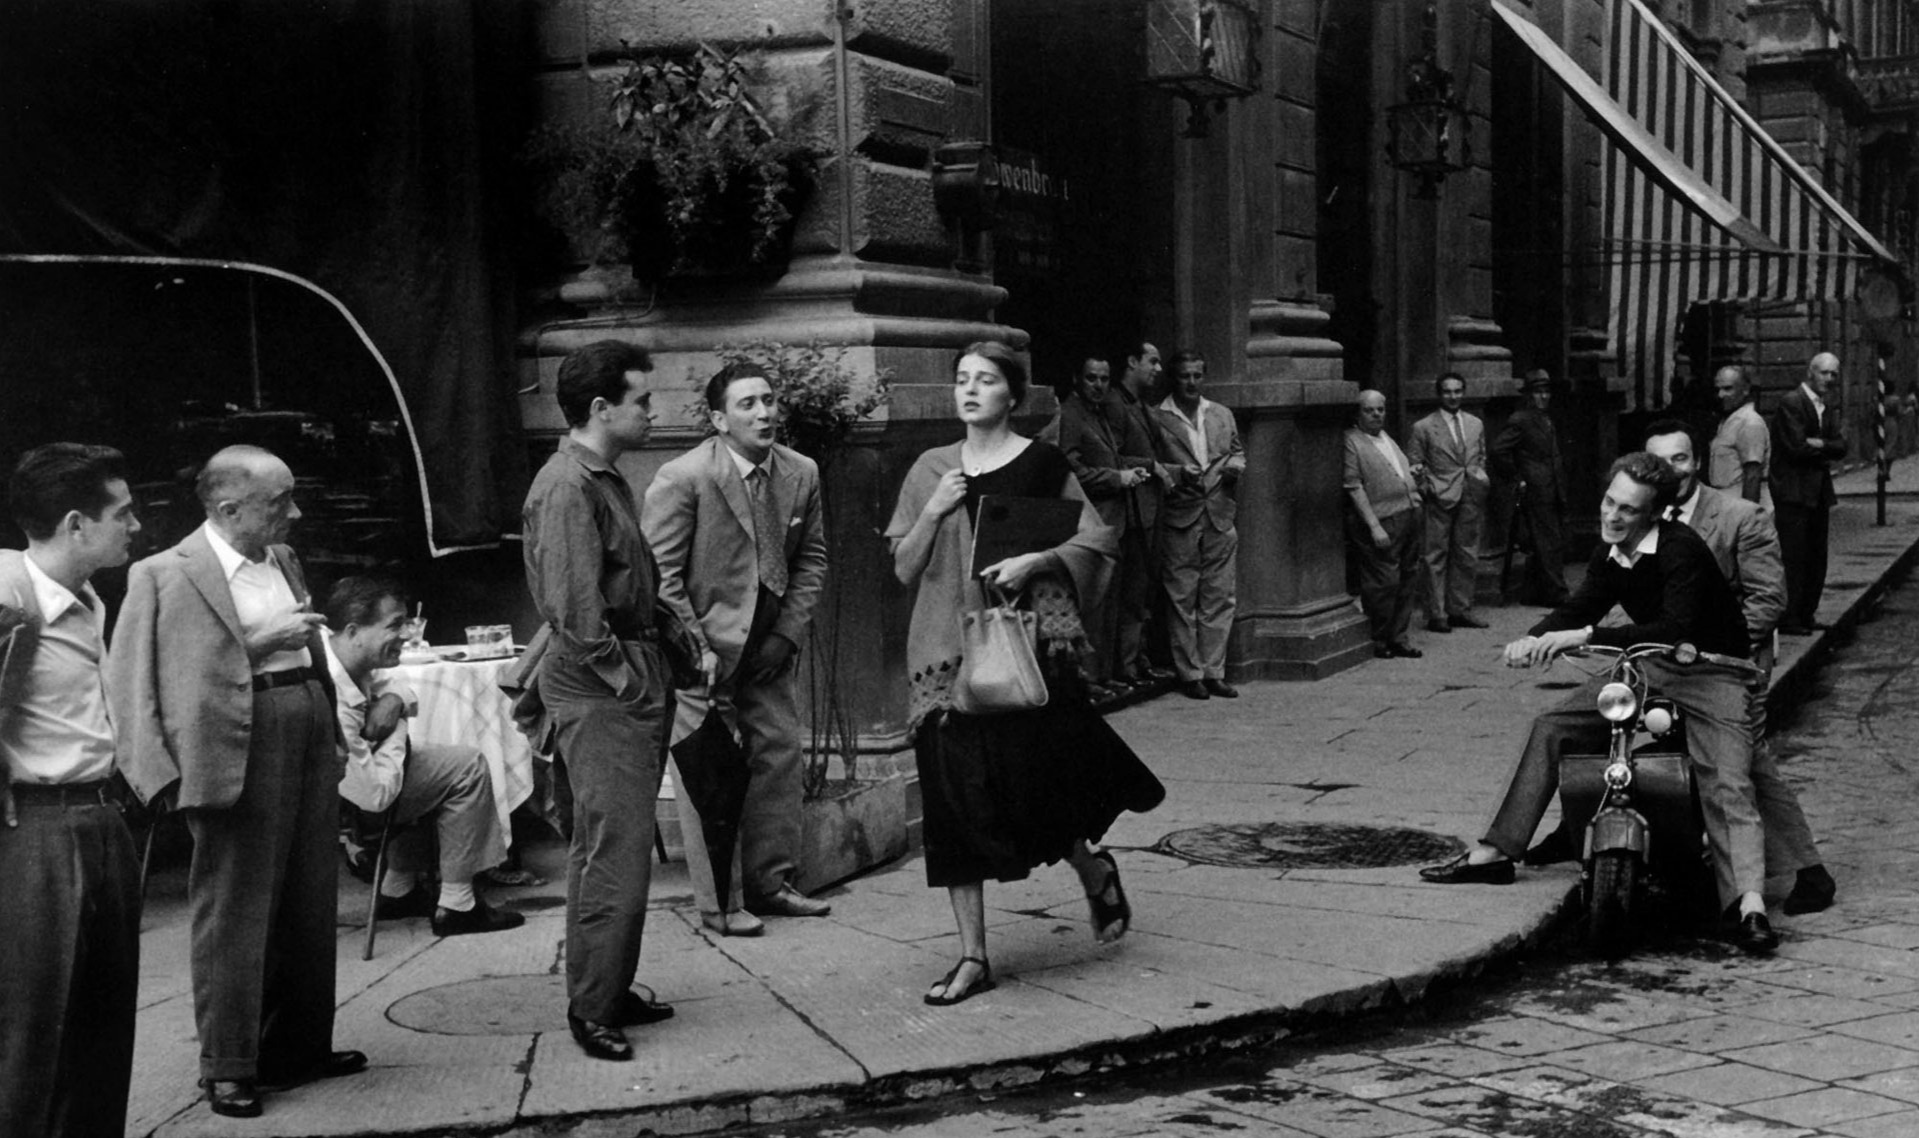 'American girl in Italy' by Ruth Orkin, 1951